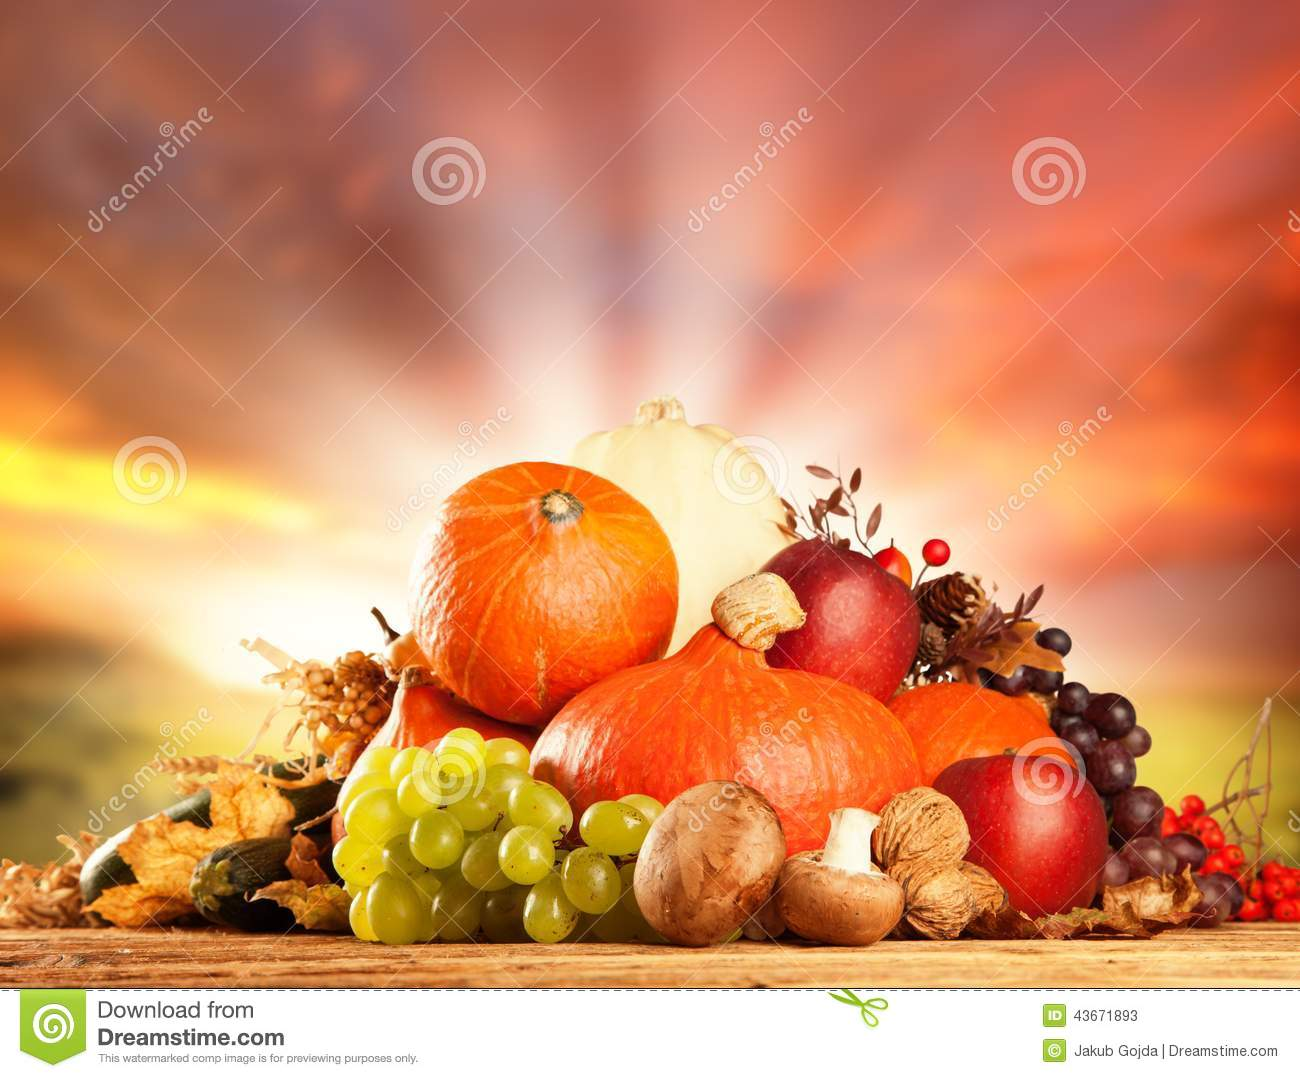 Autumn Harvested Fruit And Vegetable On Wood Stock Photo ...